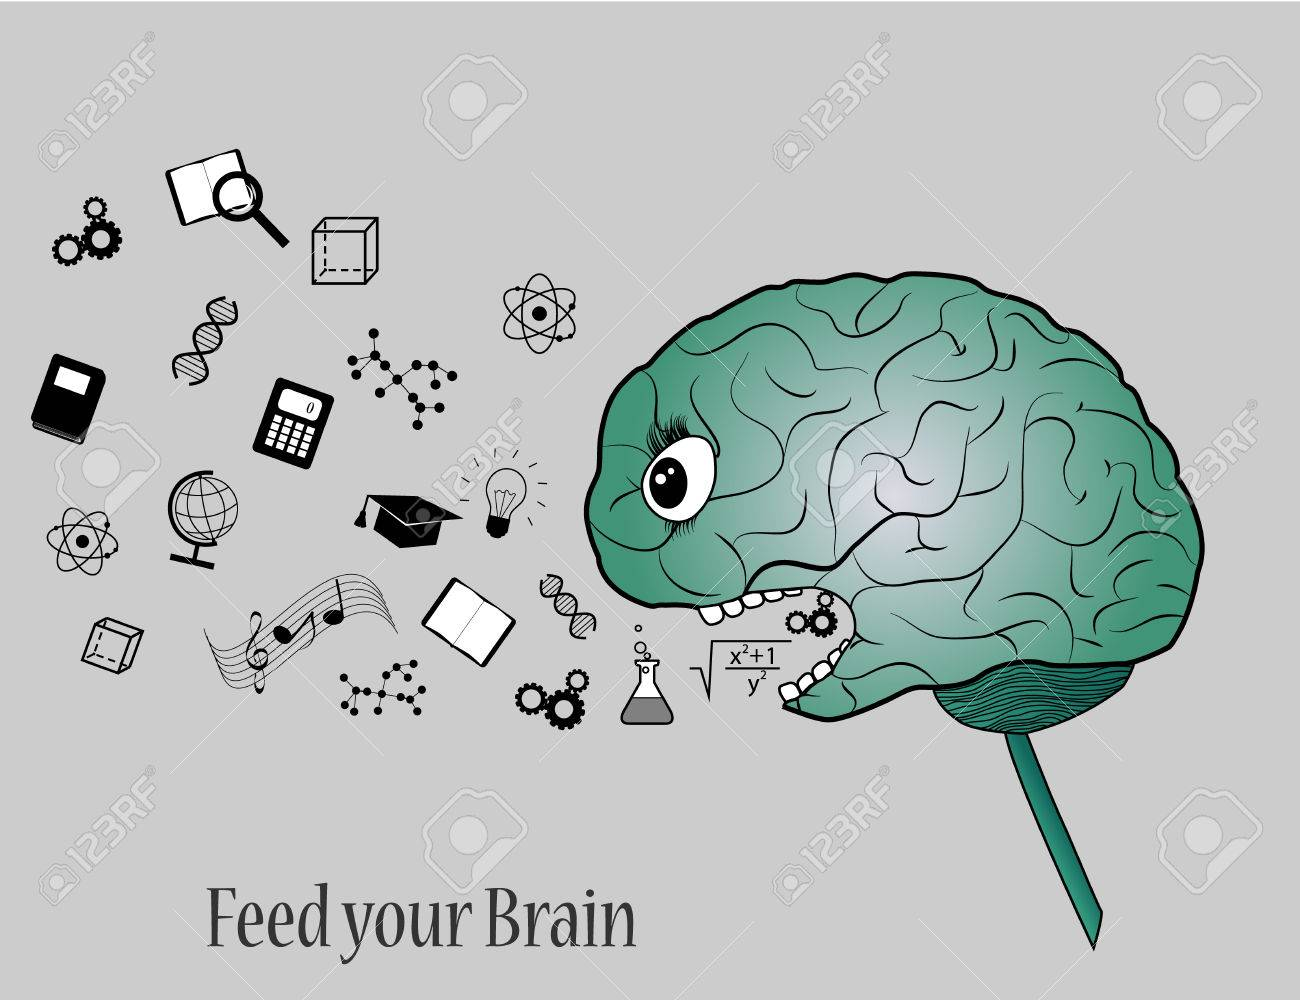 Feed your brain with knowledge  Simple illustration of brain